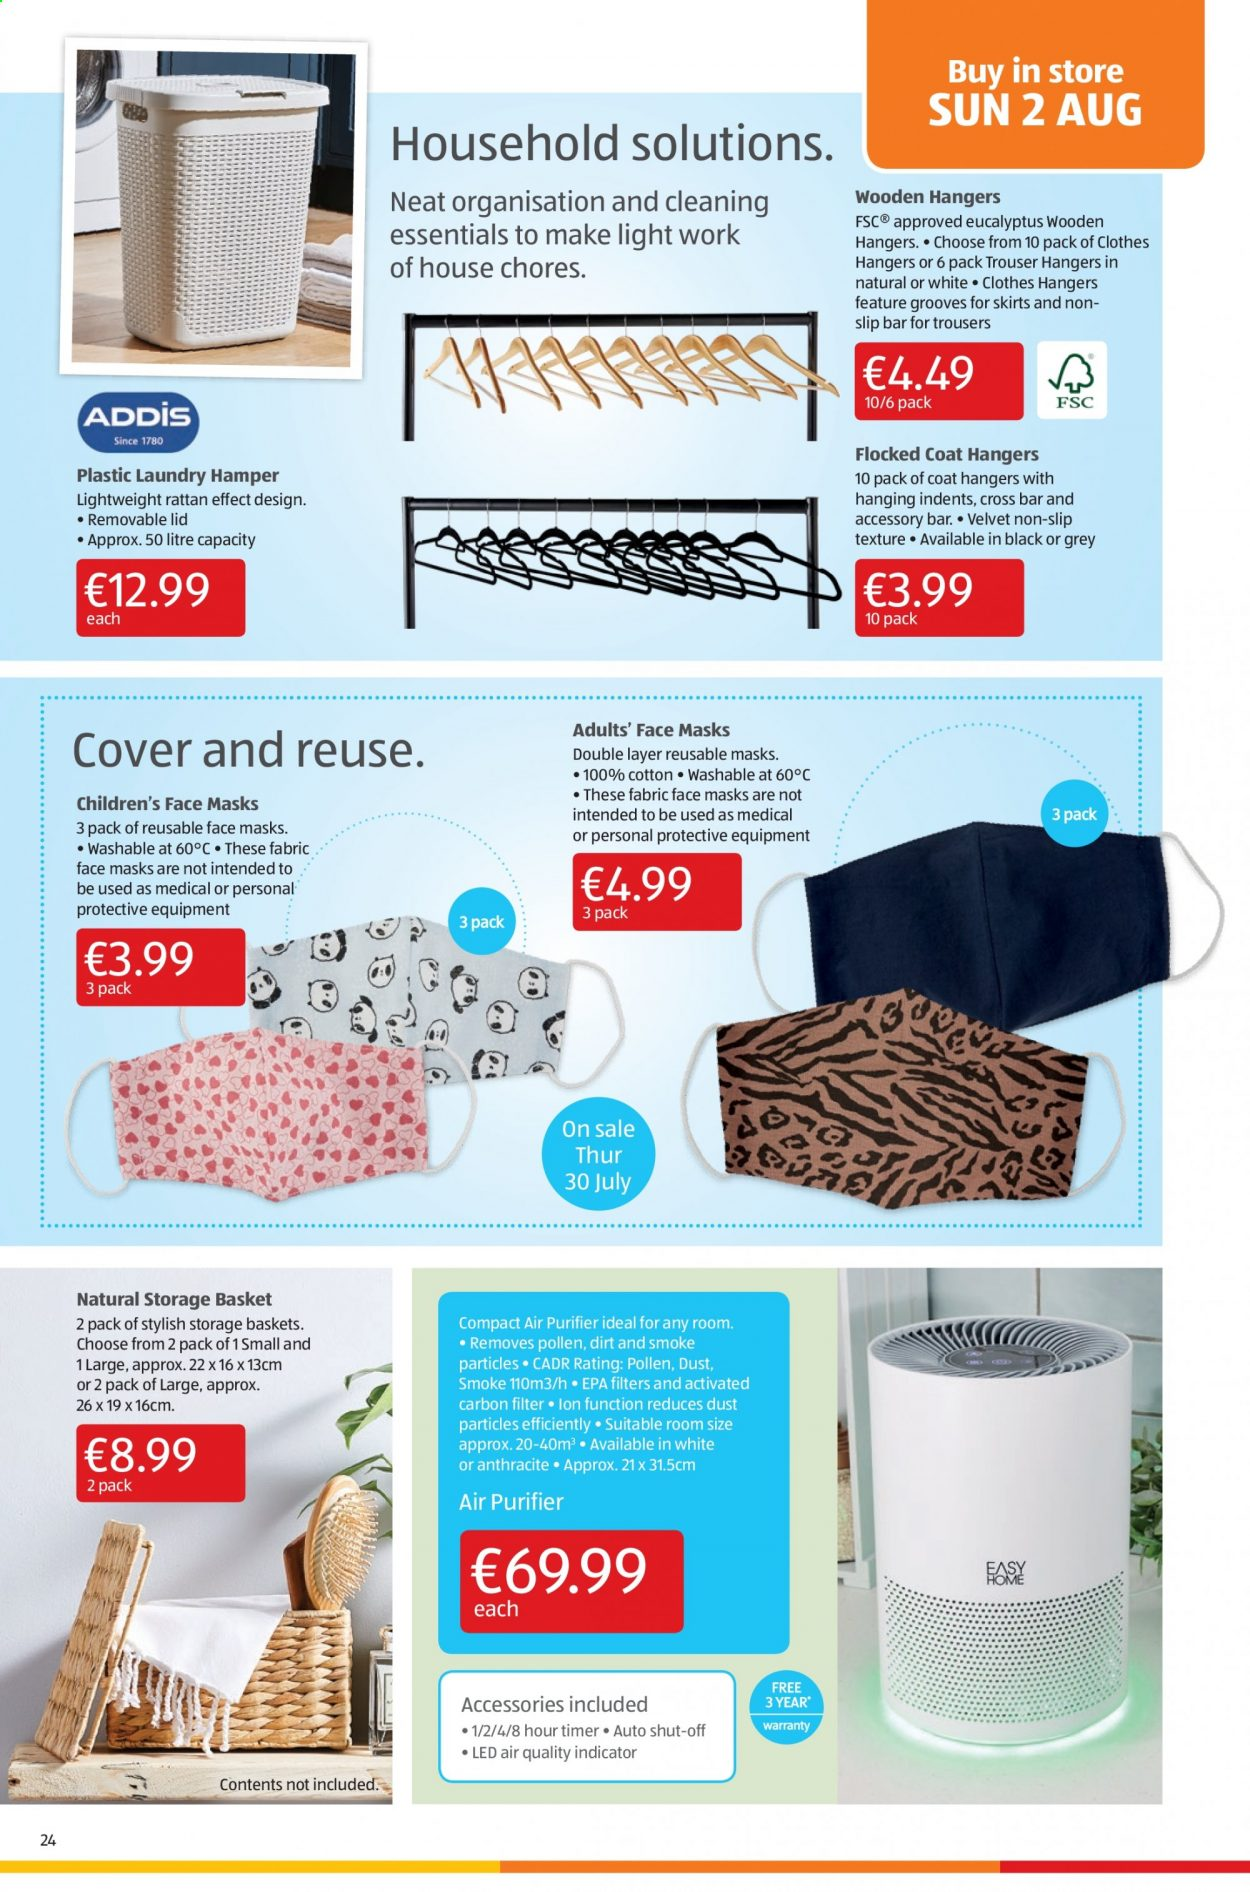 Aldi offer  - 30.7.2020 - 2.8.2020 - Sales products - accessories, basket, coat, cotton, cover, lid, storage, timer, trousers, air purifier, bar, hangers, 100% cotton, storage basket, hamper, clothes. Page 24.